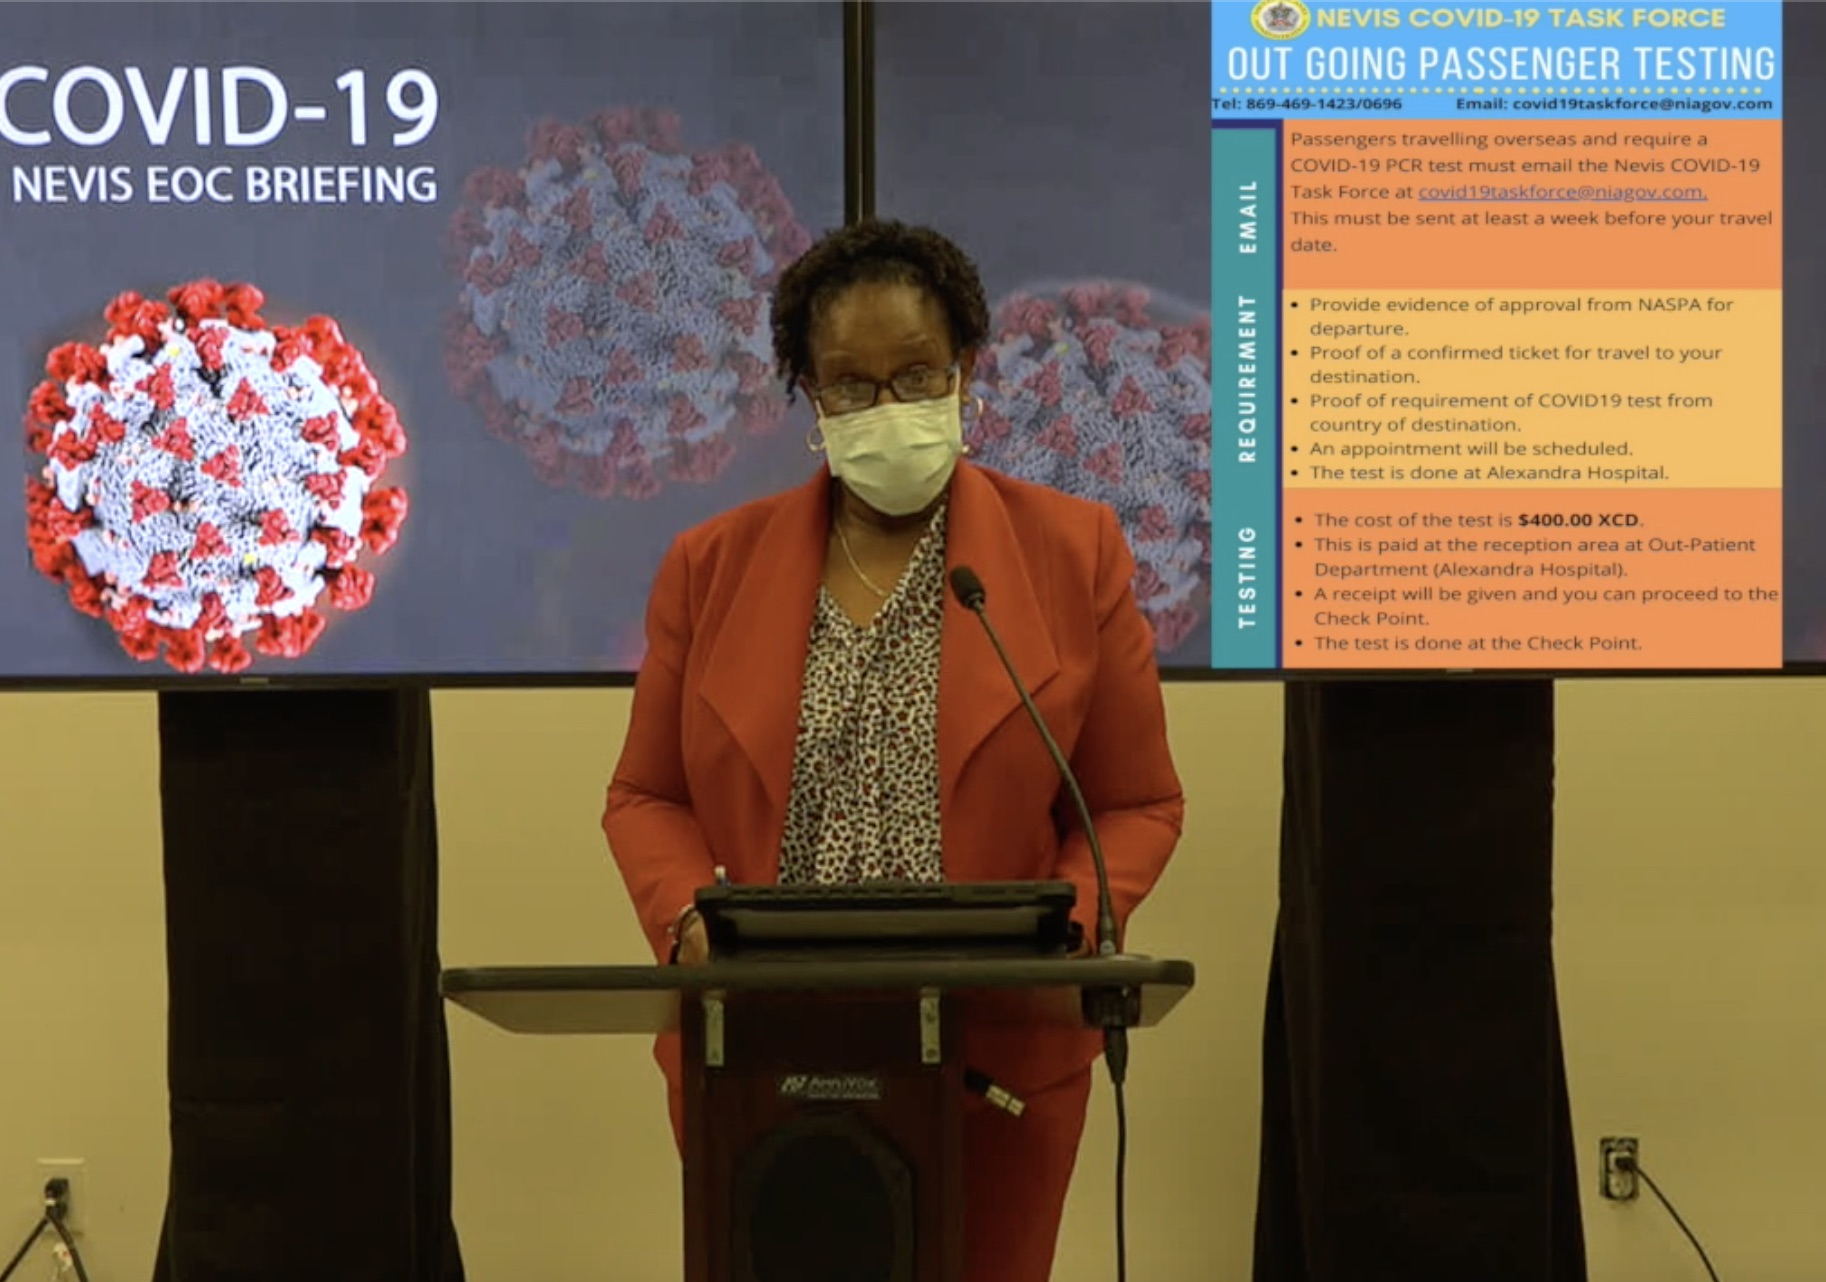 Dr. Judy Nisbett, Chair of the Nevis COVID-19 Task Force